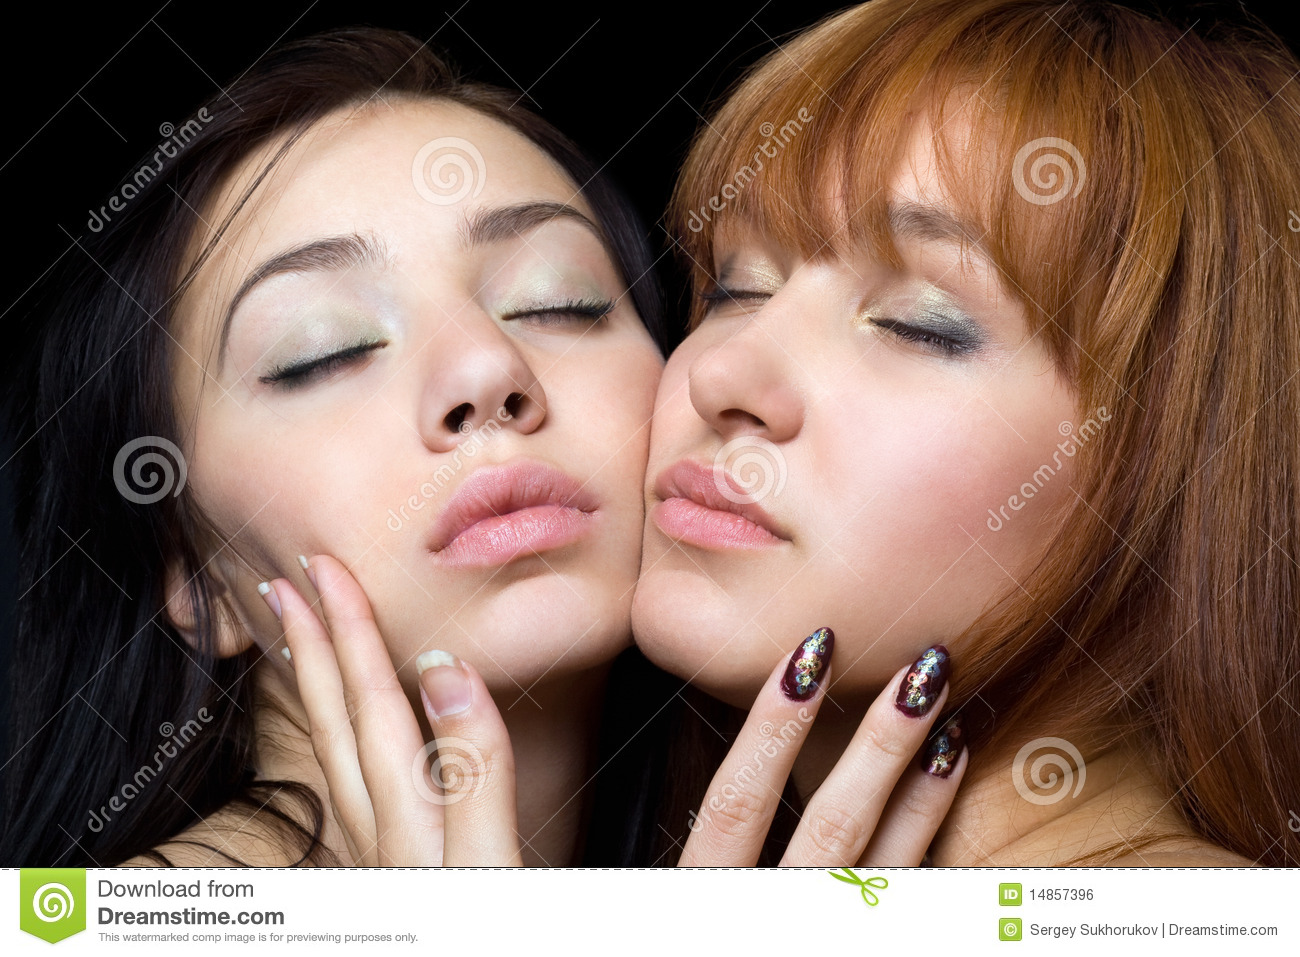 Two women with closed eyes